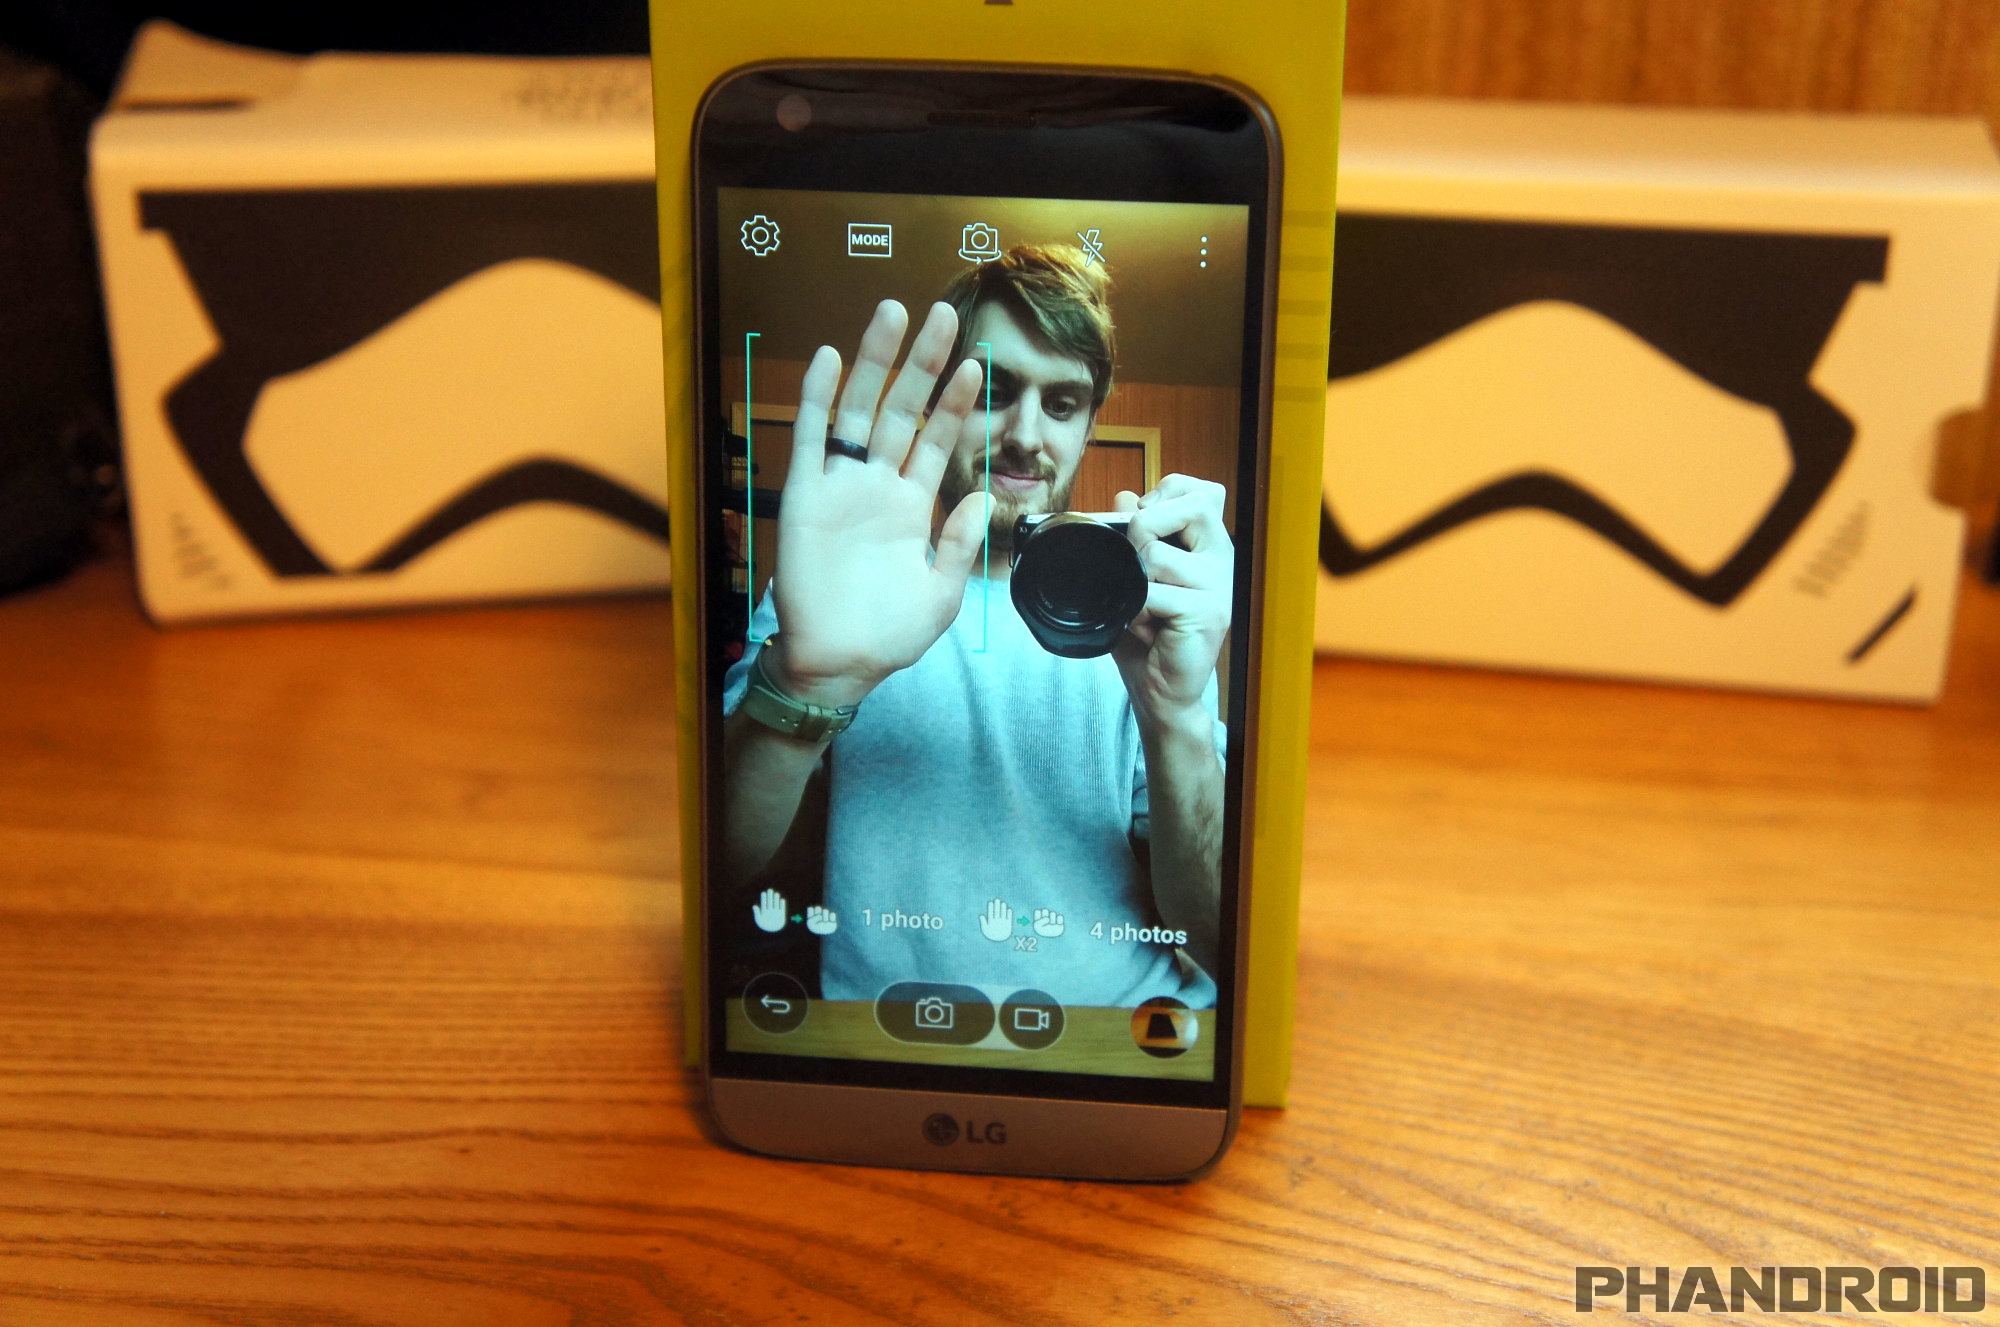 Camera Cool Tricks For Android Phones 40 lg g5 tips tricks another cool trick is called gesture shot you can take a selfie by holding your open hand up to the camera and then closing it into fist